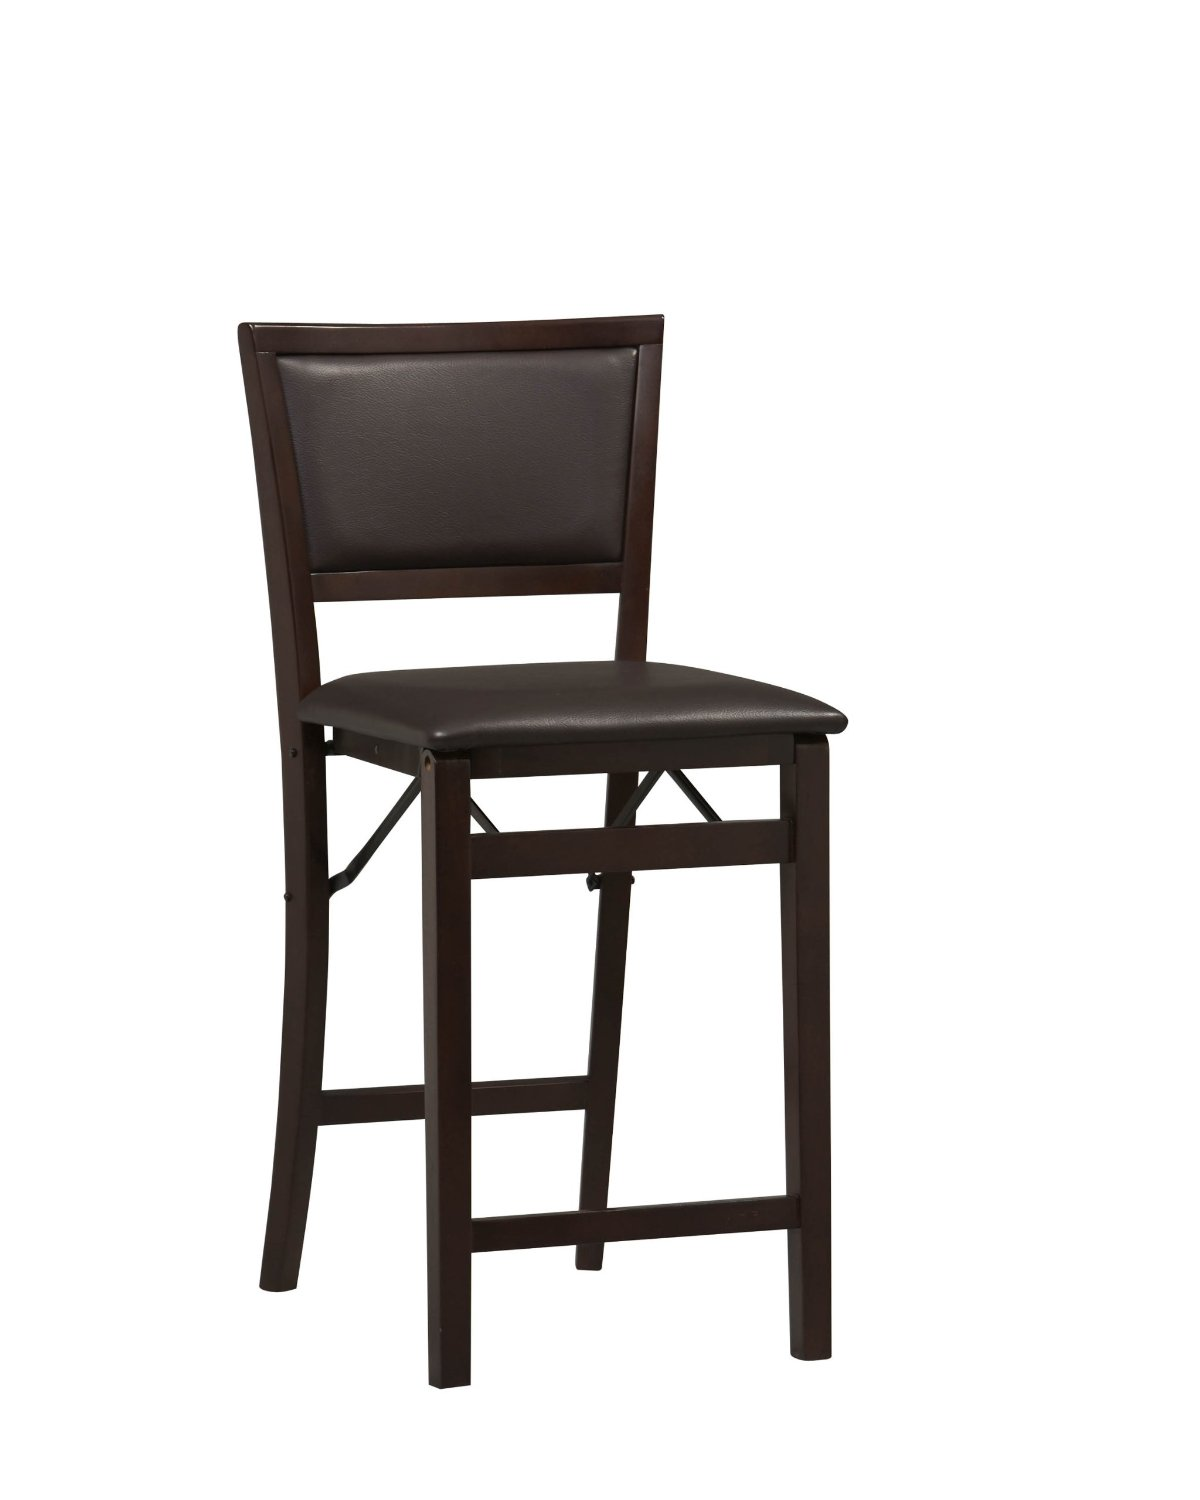 Featured Photo of The Advantages Of Buying Modern Bar Stools In Online Stores